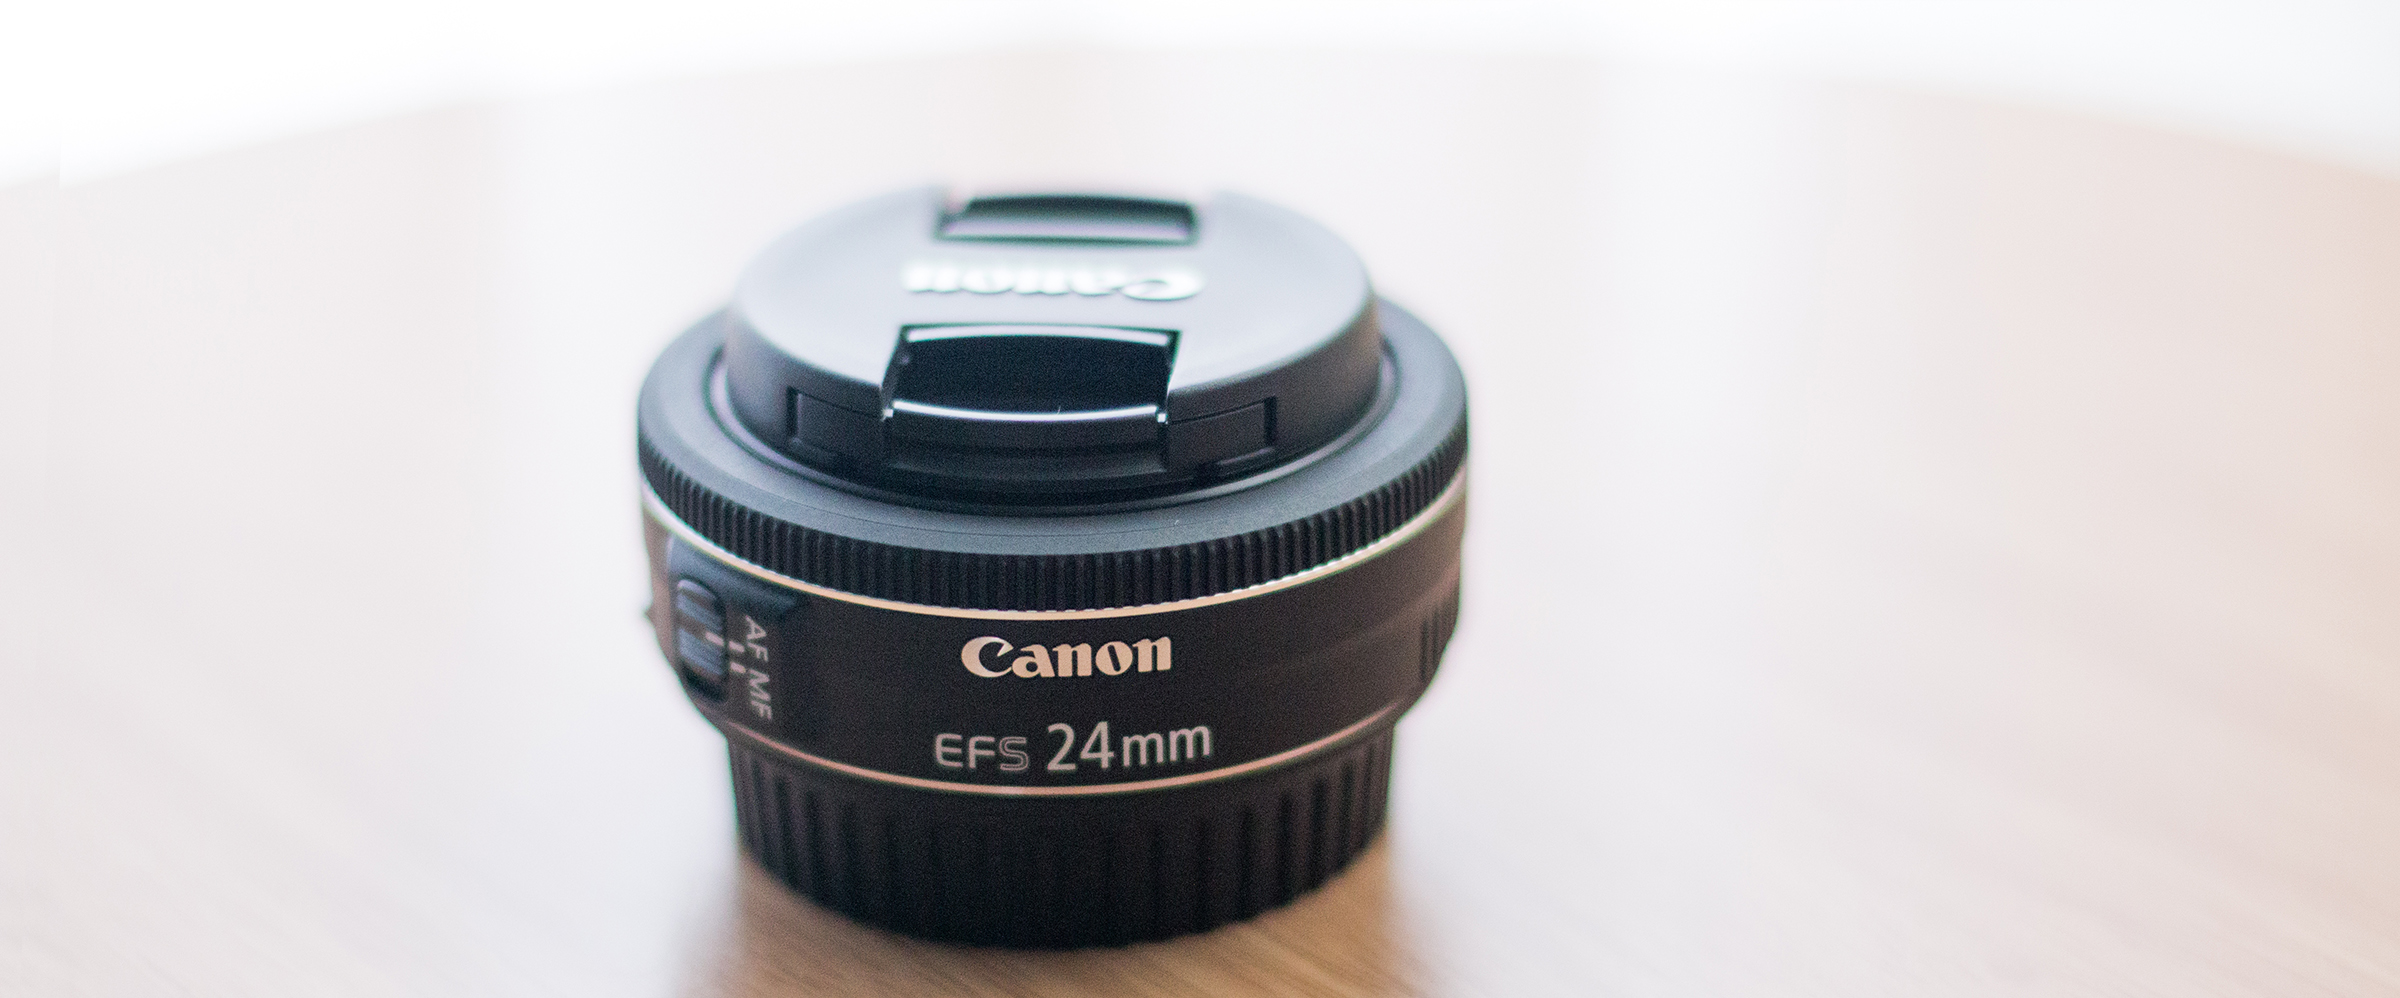 Canon 24mm f/2.8 STM